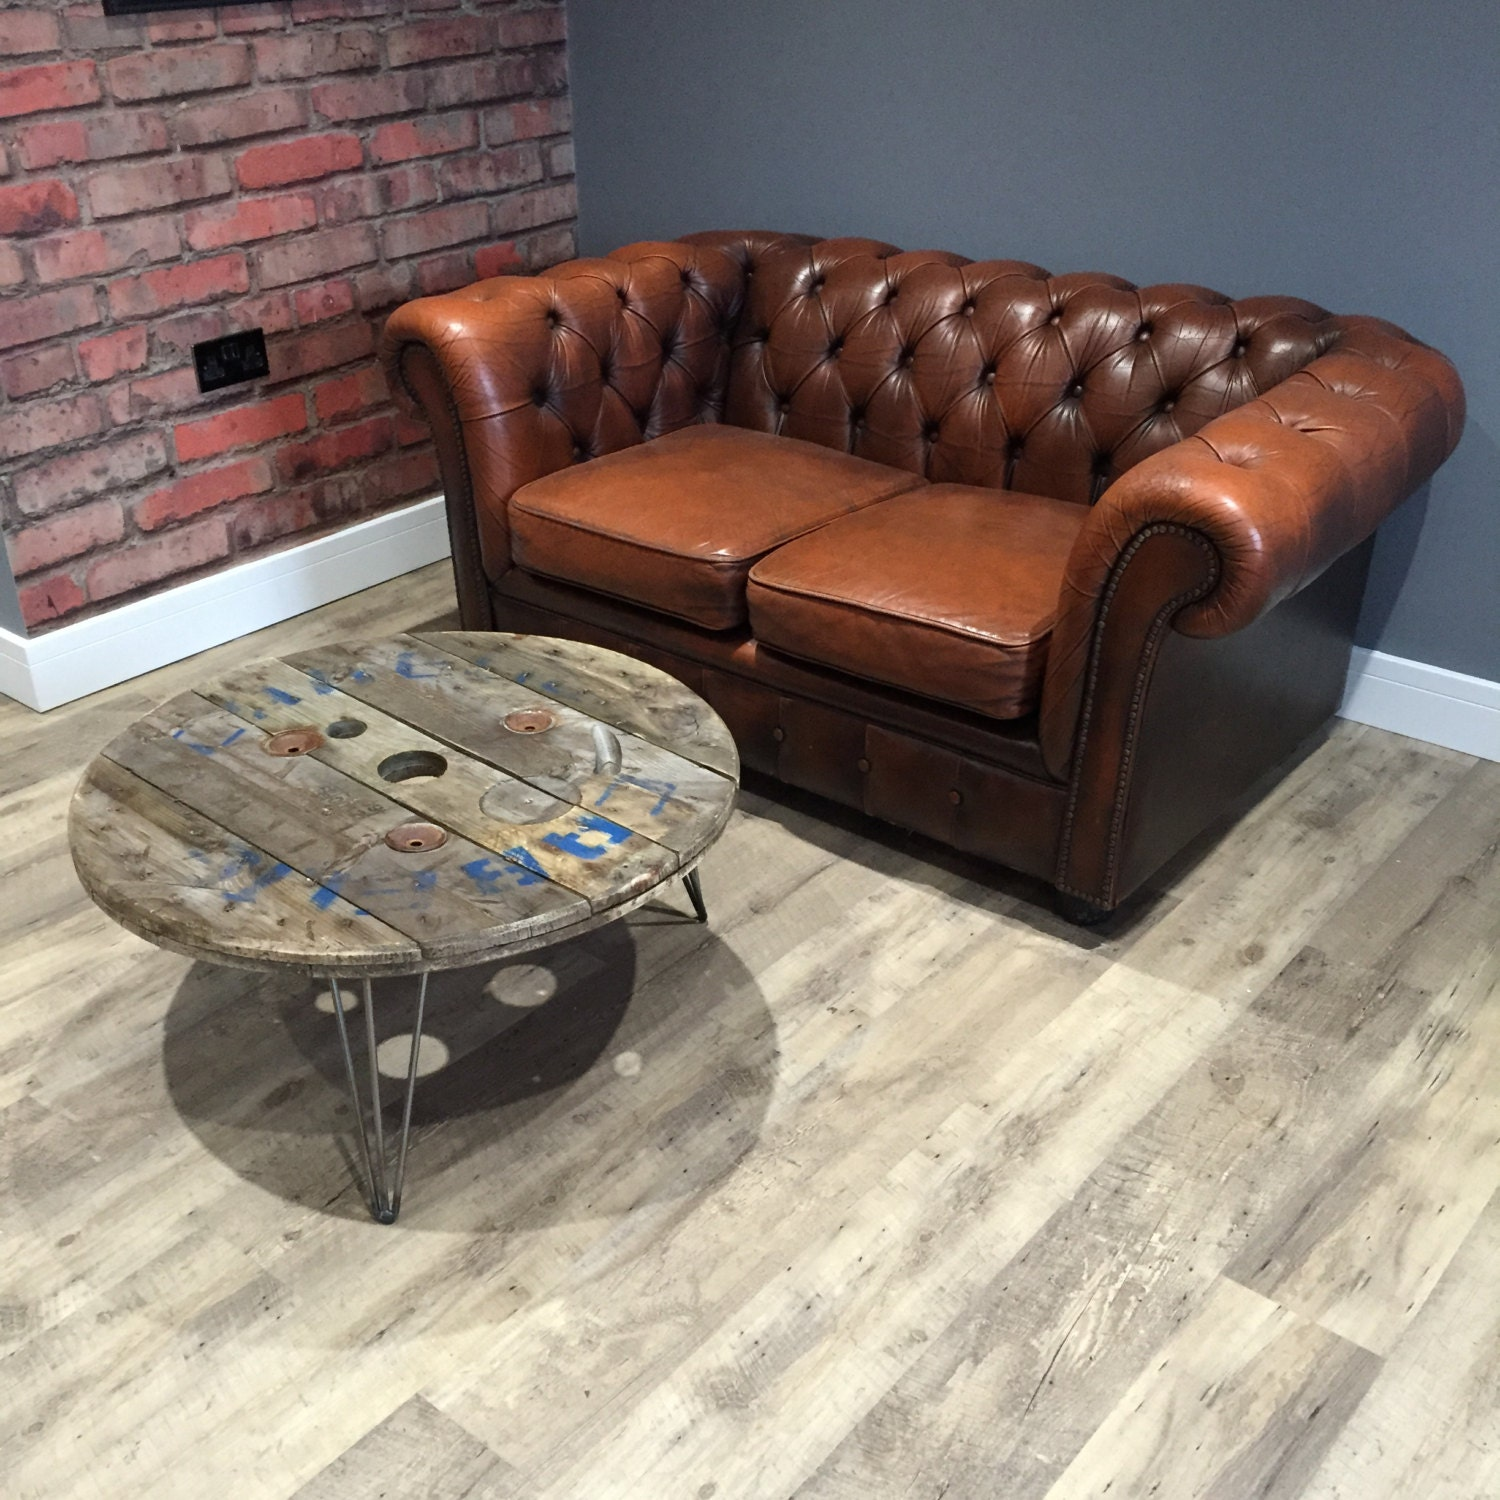 Steel Cable Drum Coffee Table in reclaimed wood with Hairpin